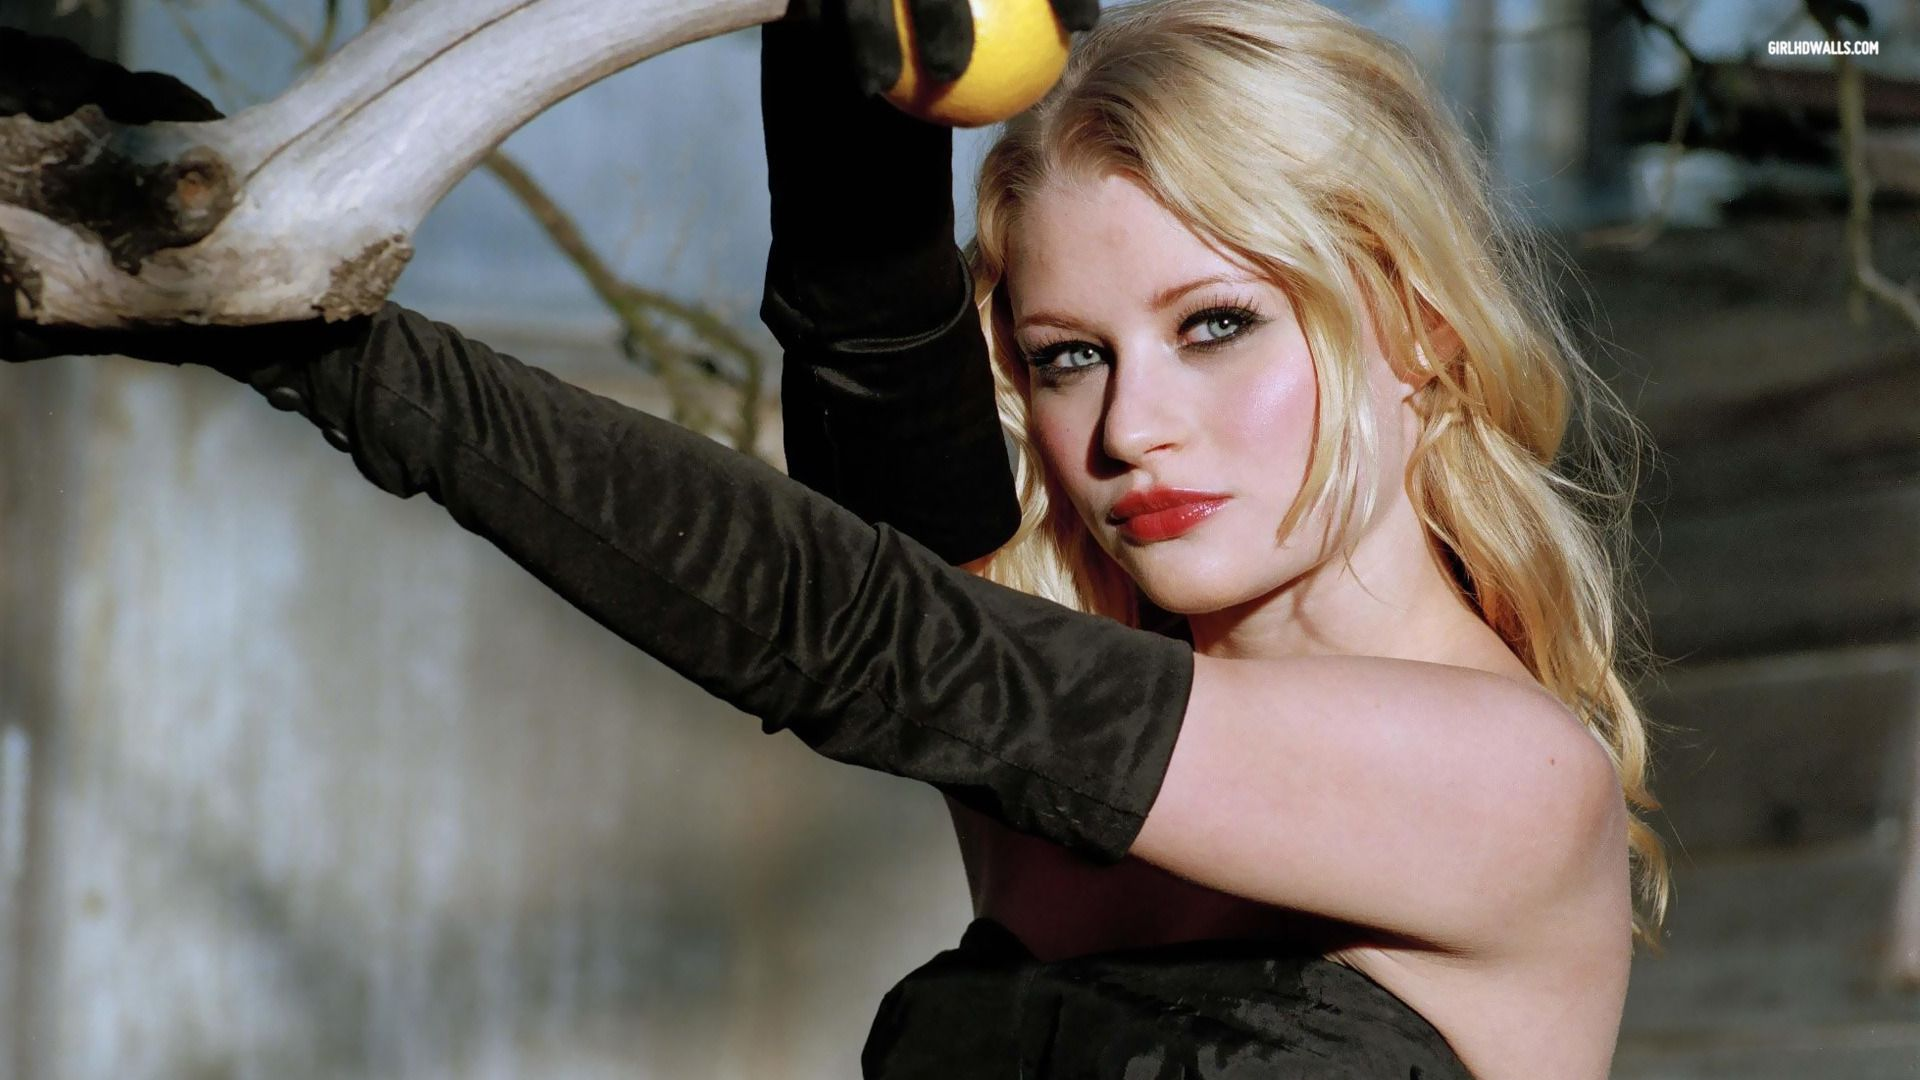 Emilie De Ravin Emiliederavin Emilie De Ravin Cool Eyes Pictures